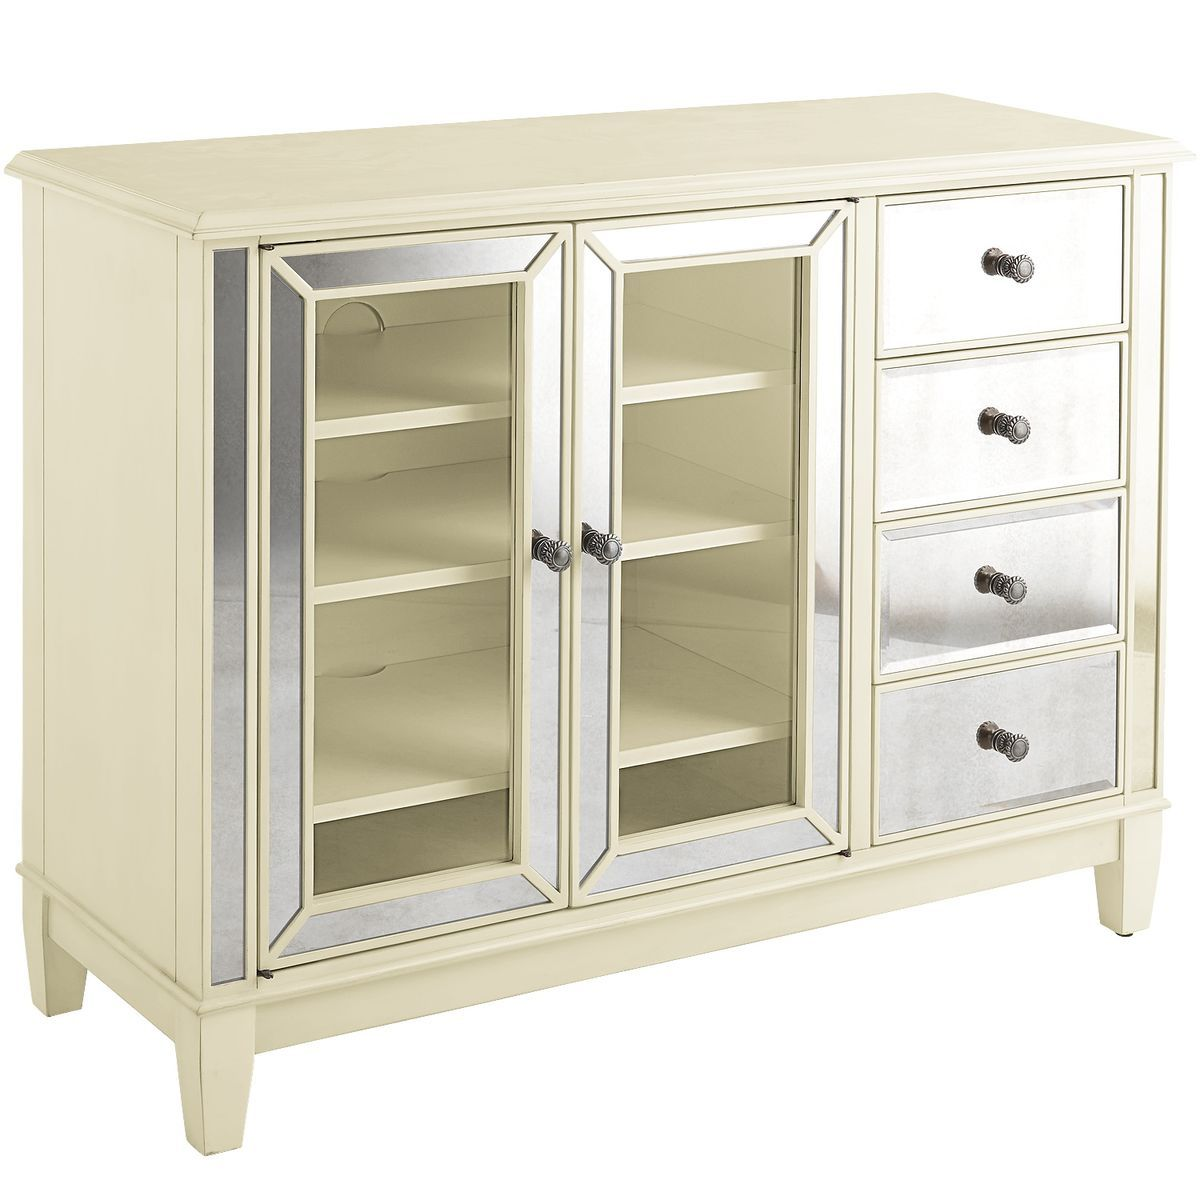 Hayworth TV Stand - Antique White